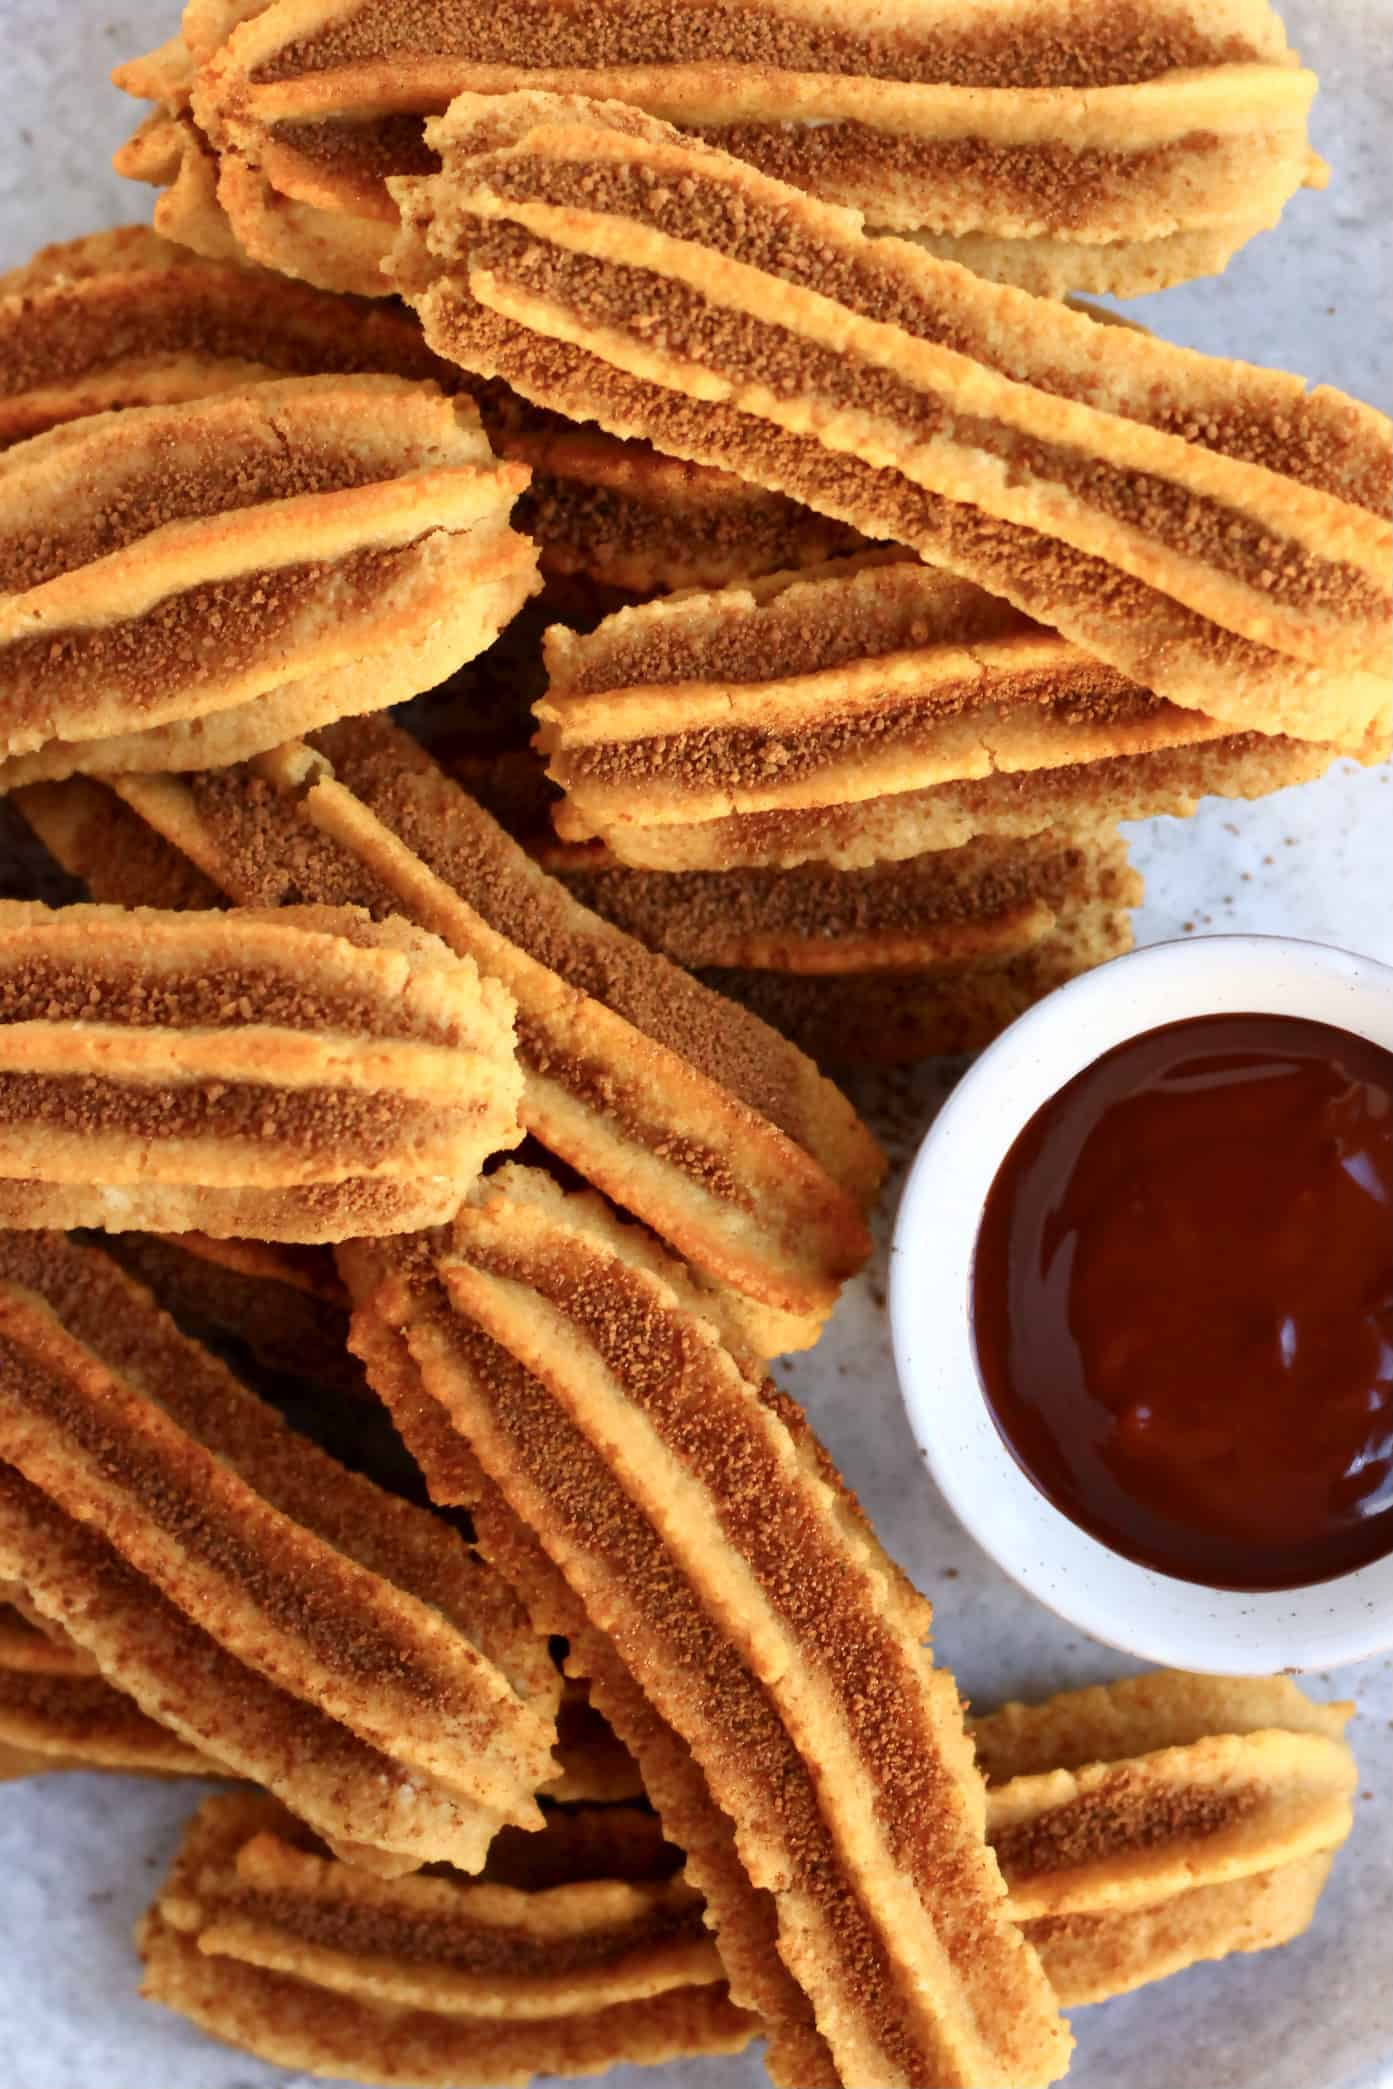 Several gluten-free vegan churros dusted with cinnamon sugar on a plate with a bowl of vegan chocolate sauce